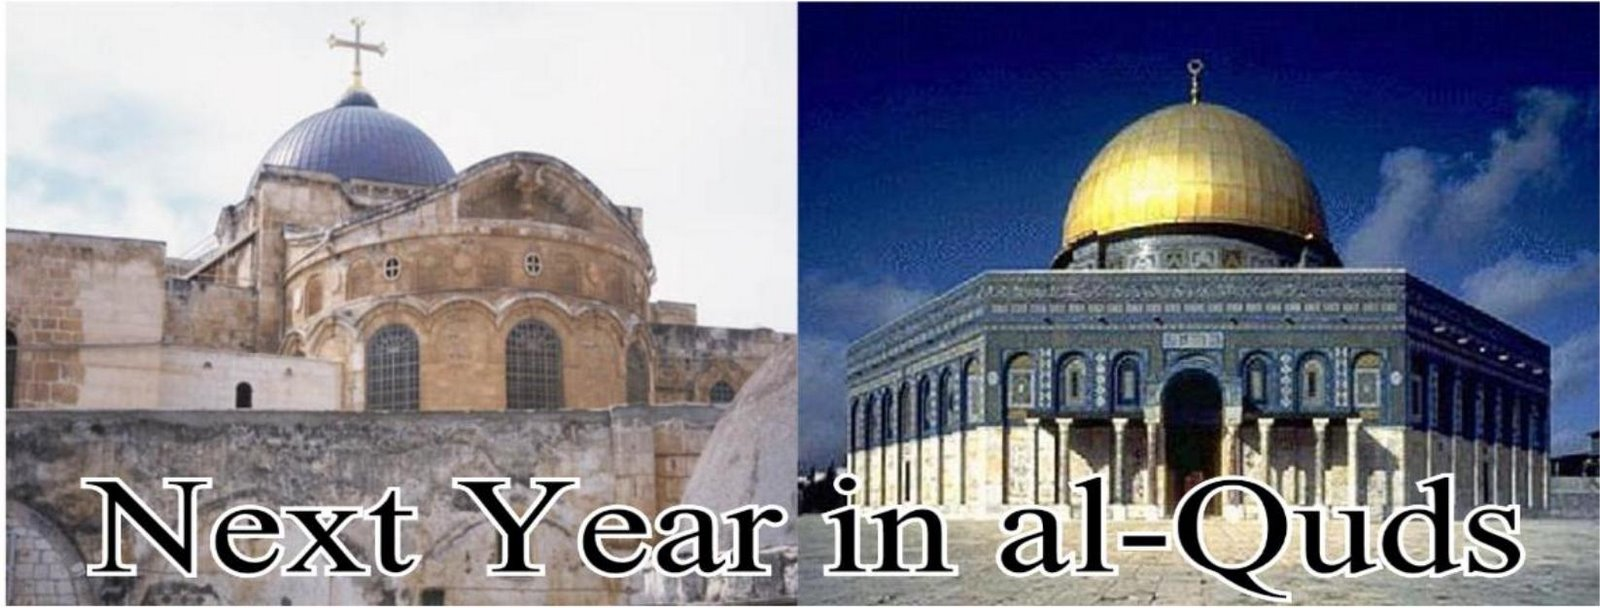 Next Year in al-Quds